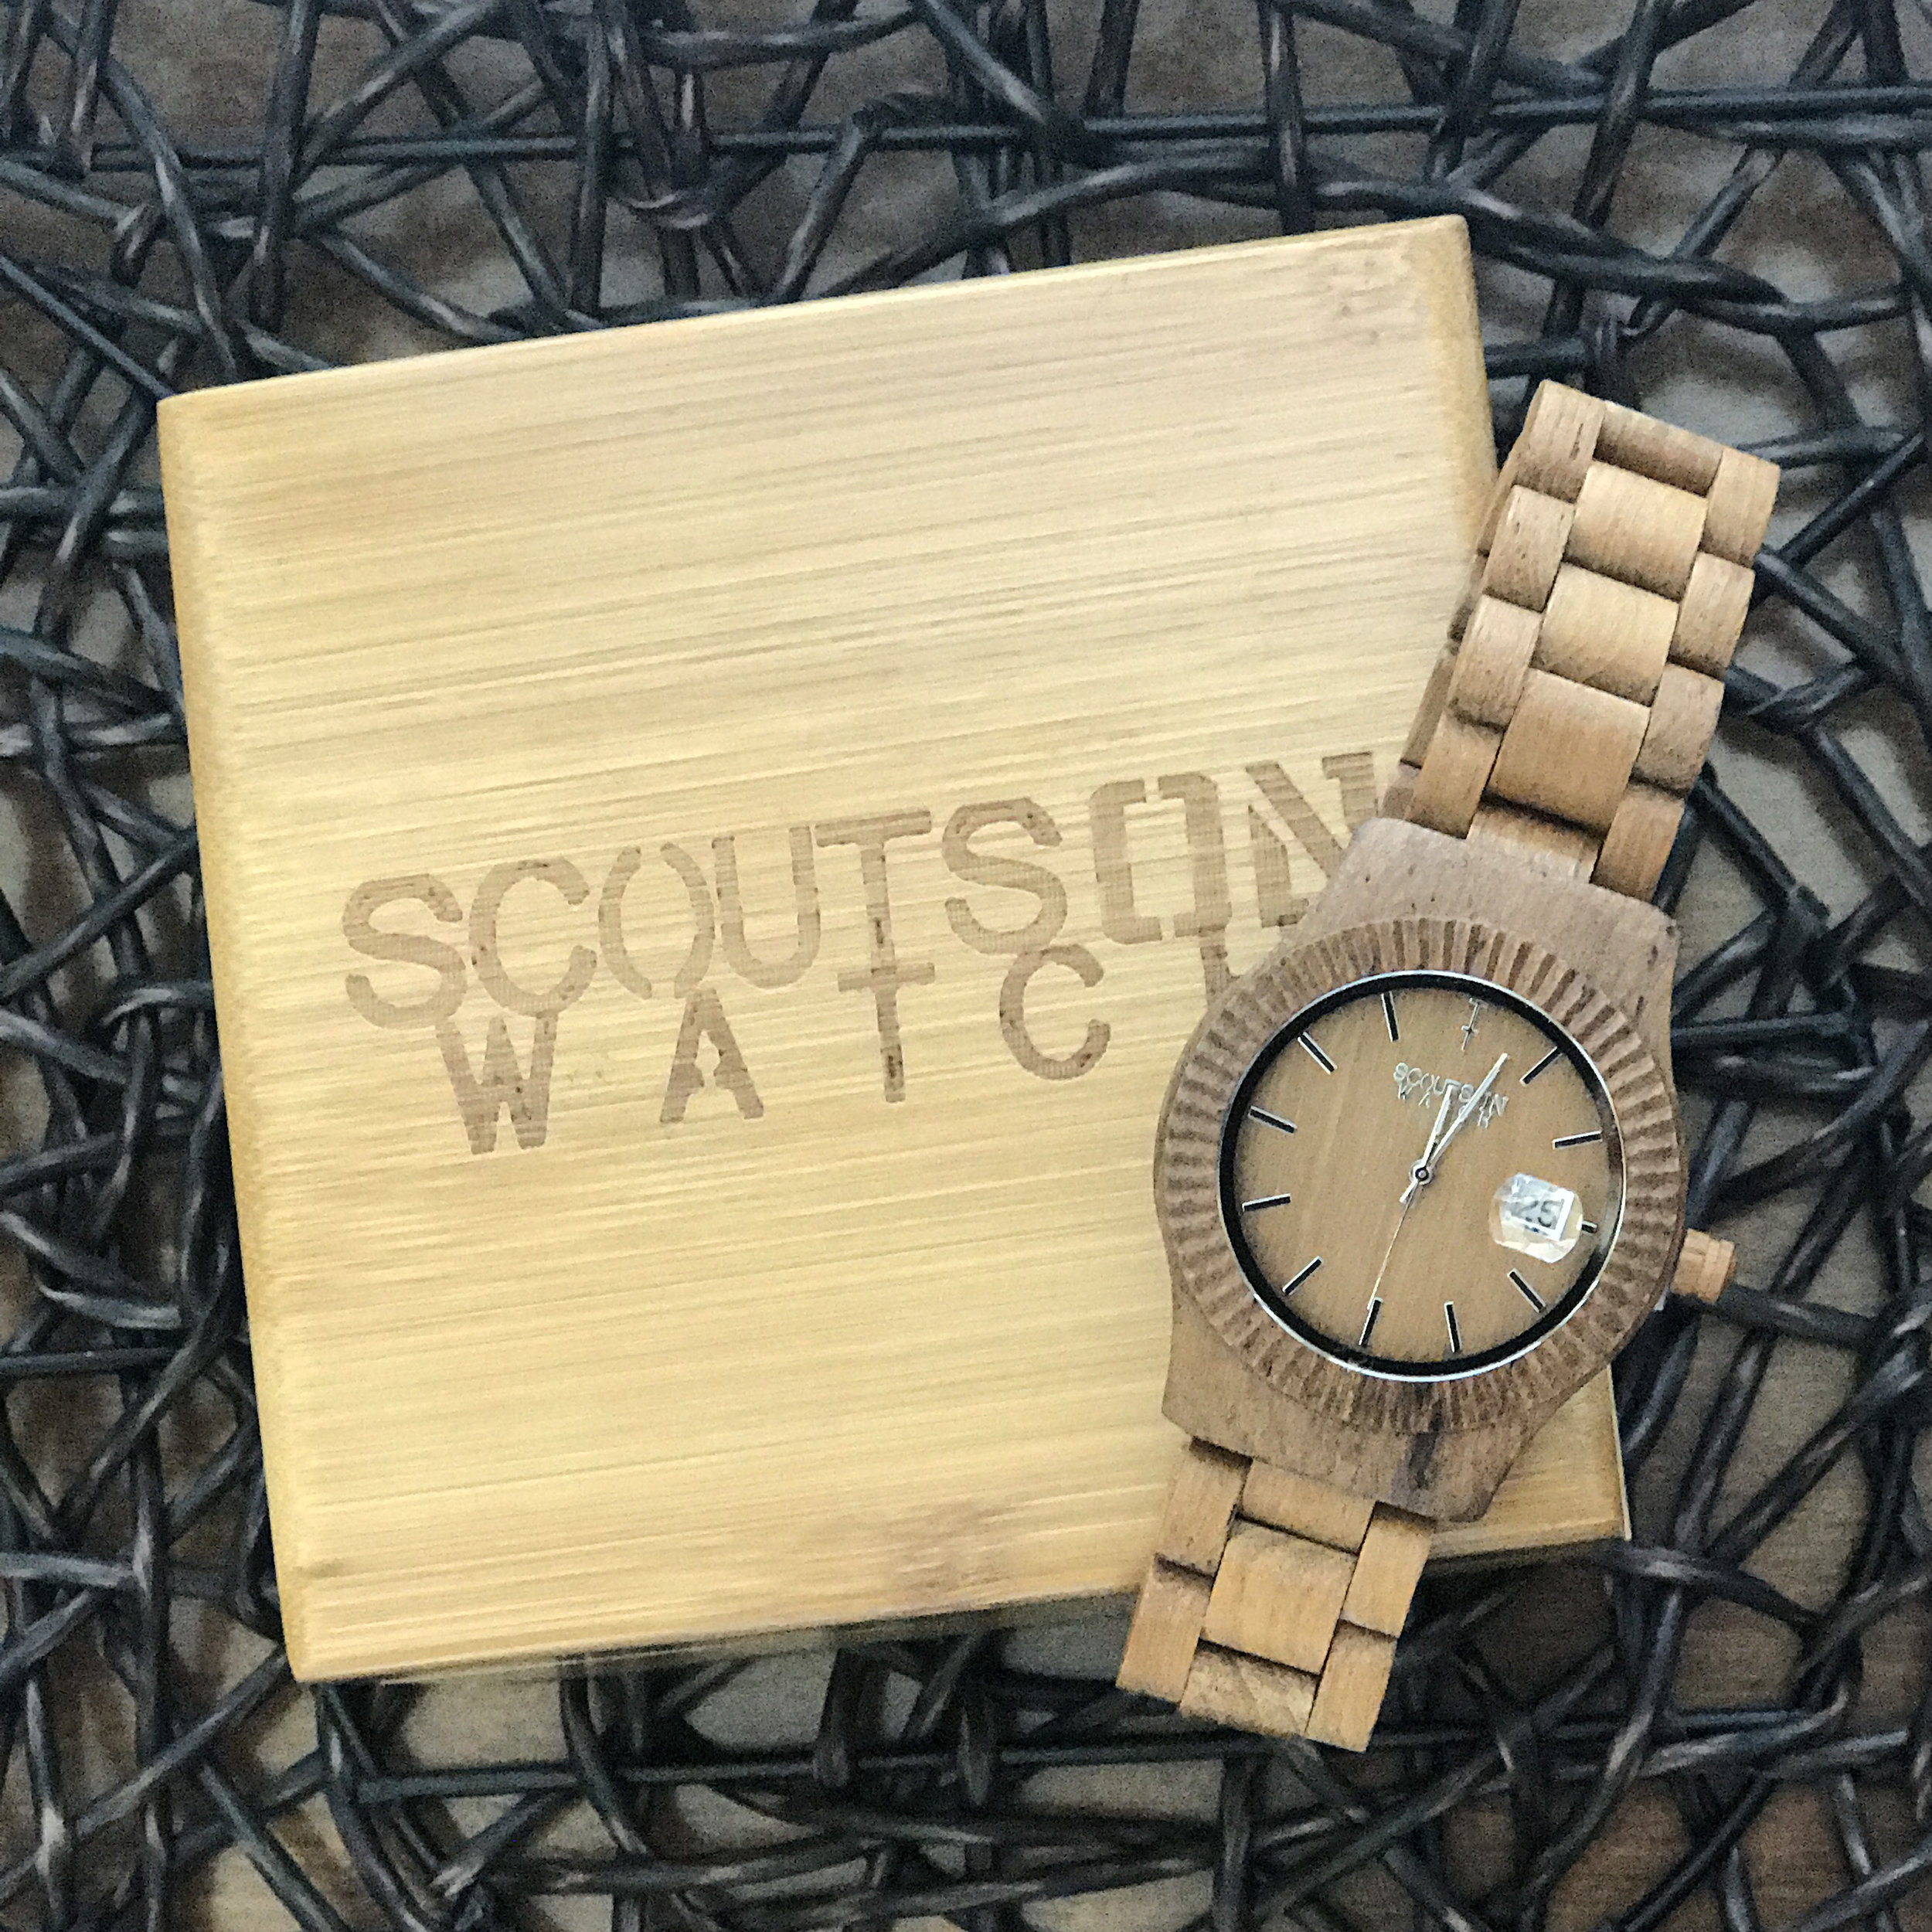 The Veteran - Strength. Honor. Reliability. These are all qualities that you will find in the heart, mind and soul of a soldier.The Veteranis the original ScoutsOn Watch timepiece, a unisex 100% natural teak wood masterpiece inspired by the qualities of a soldier. When you wear The Veteran,you not only show your support of those who serve, you exhibit the subtle style and prestige that a natural wooden watch displays to the world.